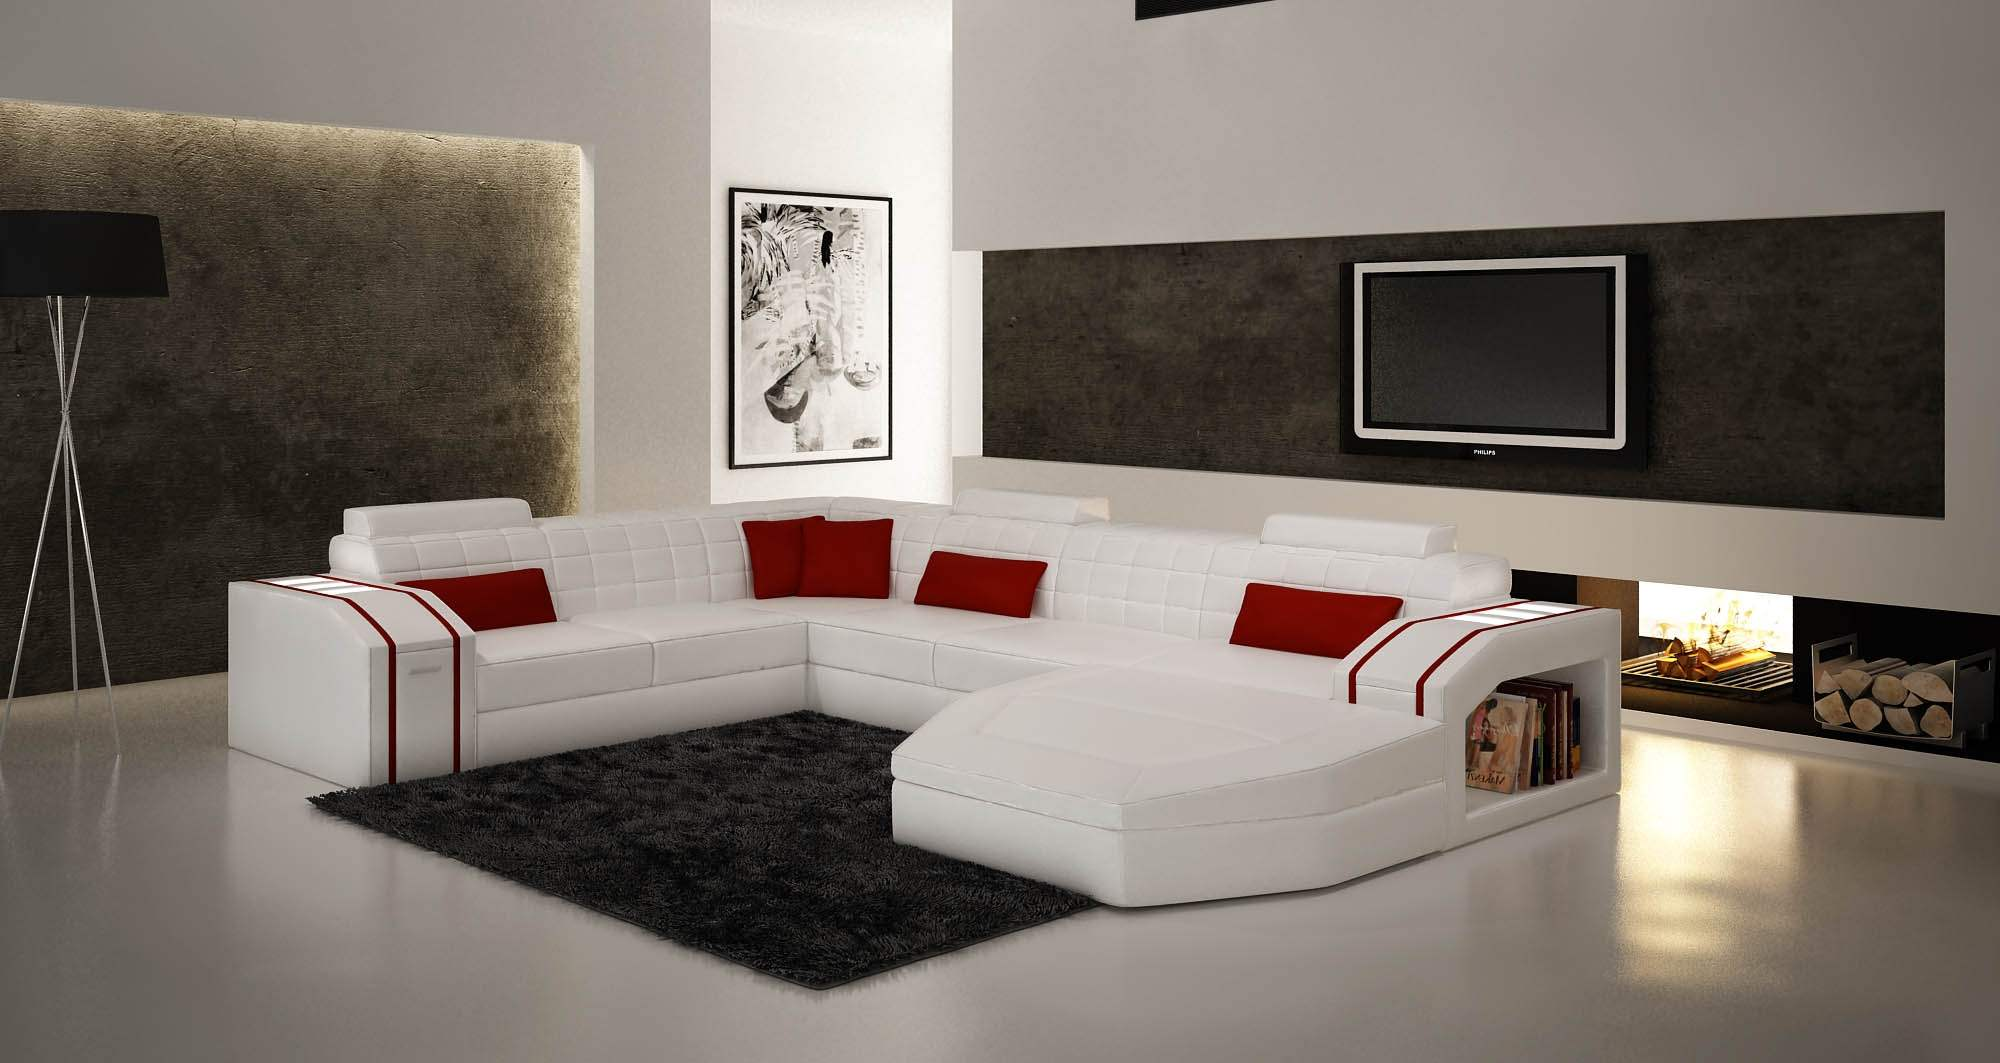 deco in paris canape d angle panoramique cuir blanc et rouge saturn satur blan roug pano. Black Bedroom Furniture Sets. Home Design Ideas